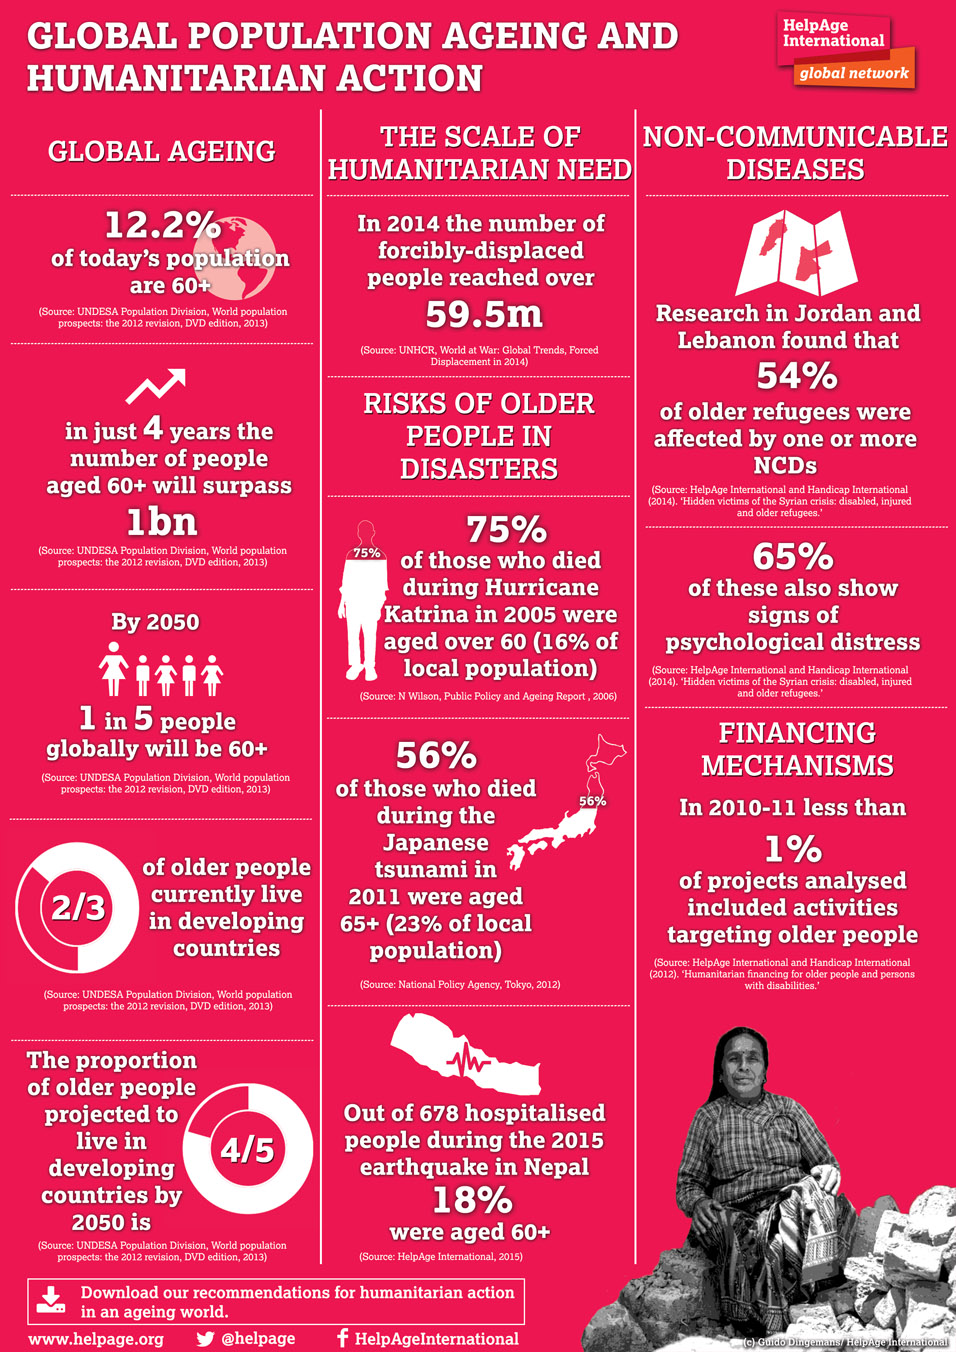 Global population ageing and humanitarian action infographic. (c) HelpAge International. Click to download recommendations for humanitarian action in an ageing world.